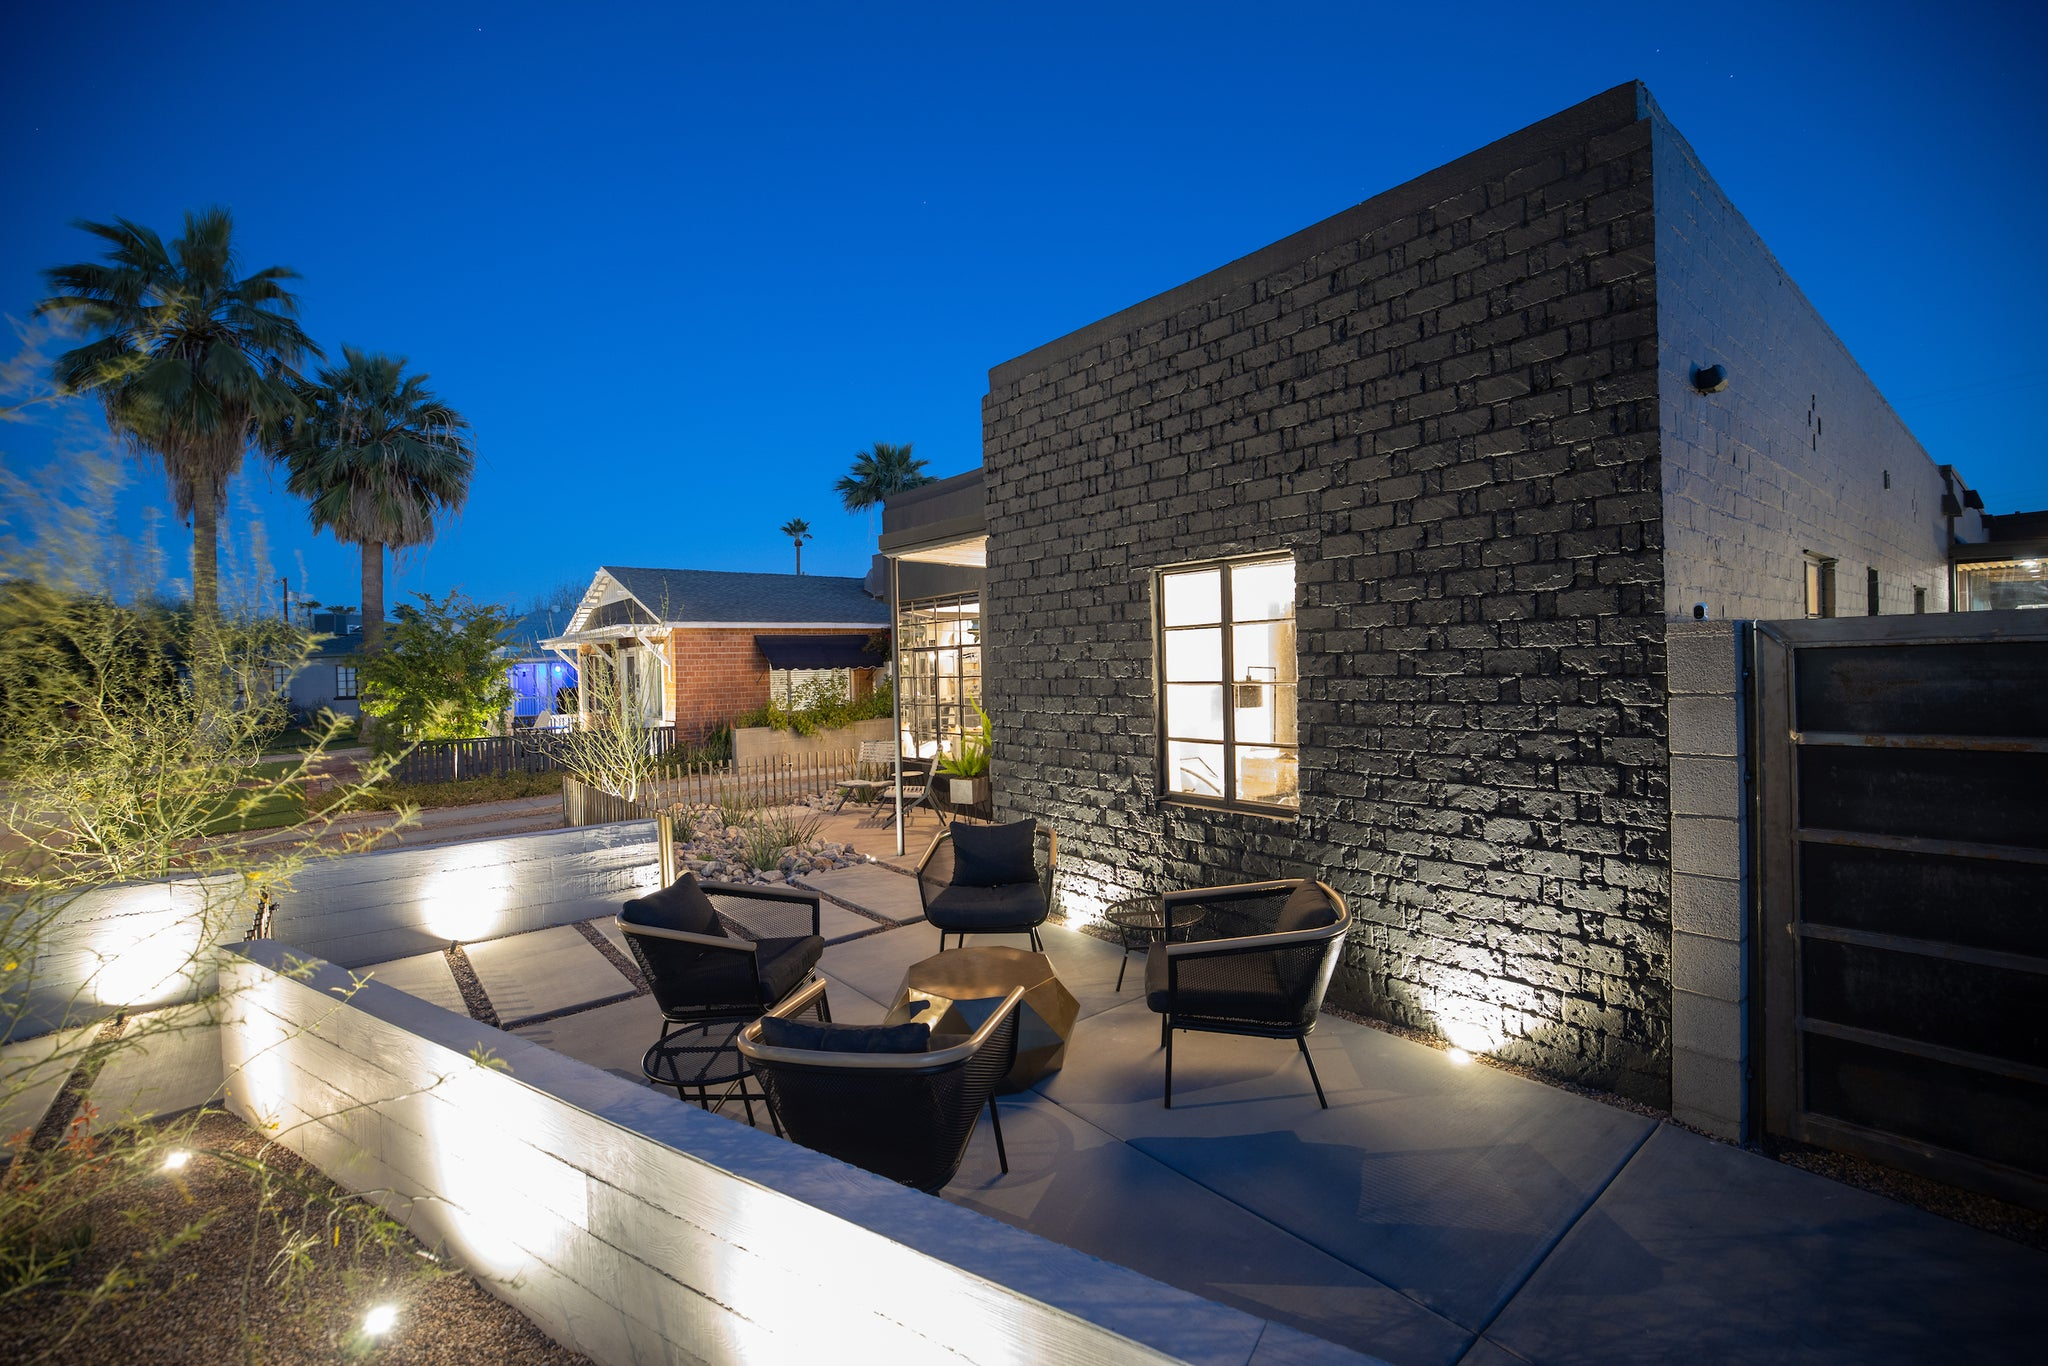 JAmes judge home exterior showing courtyard with board-formed concrete panels on the half wall and black outdoor furniture